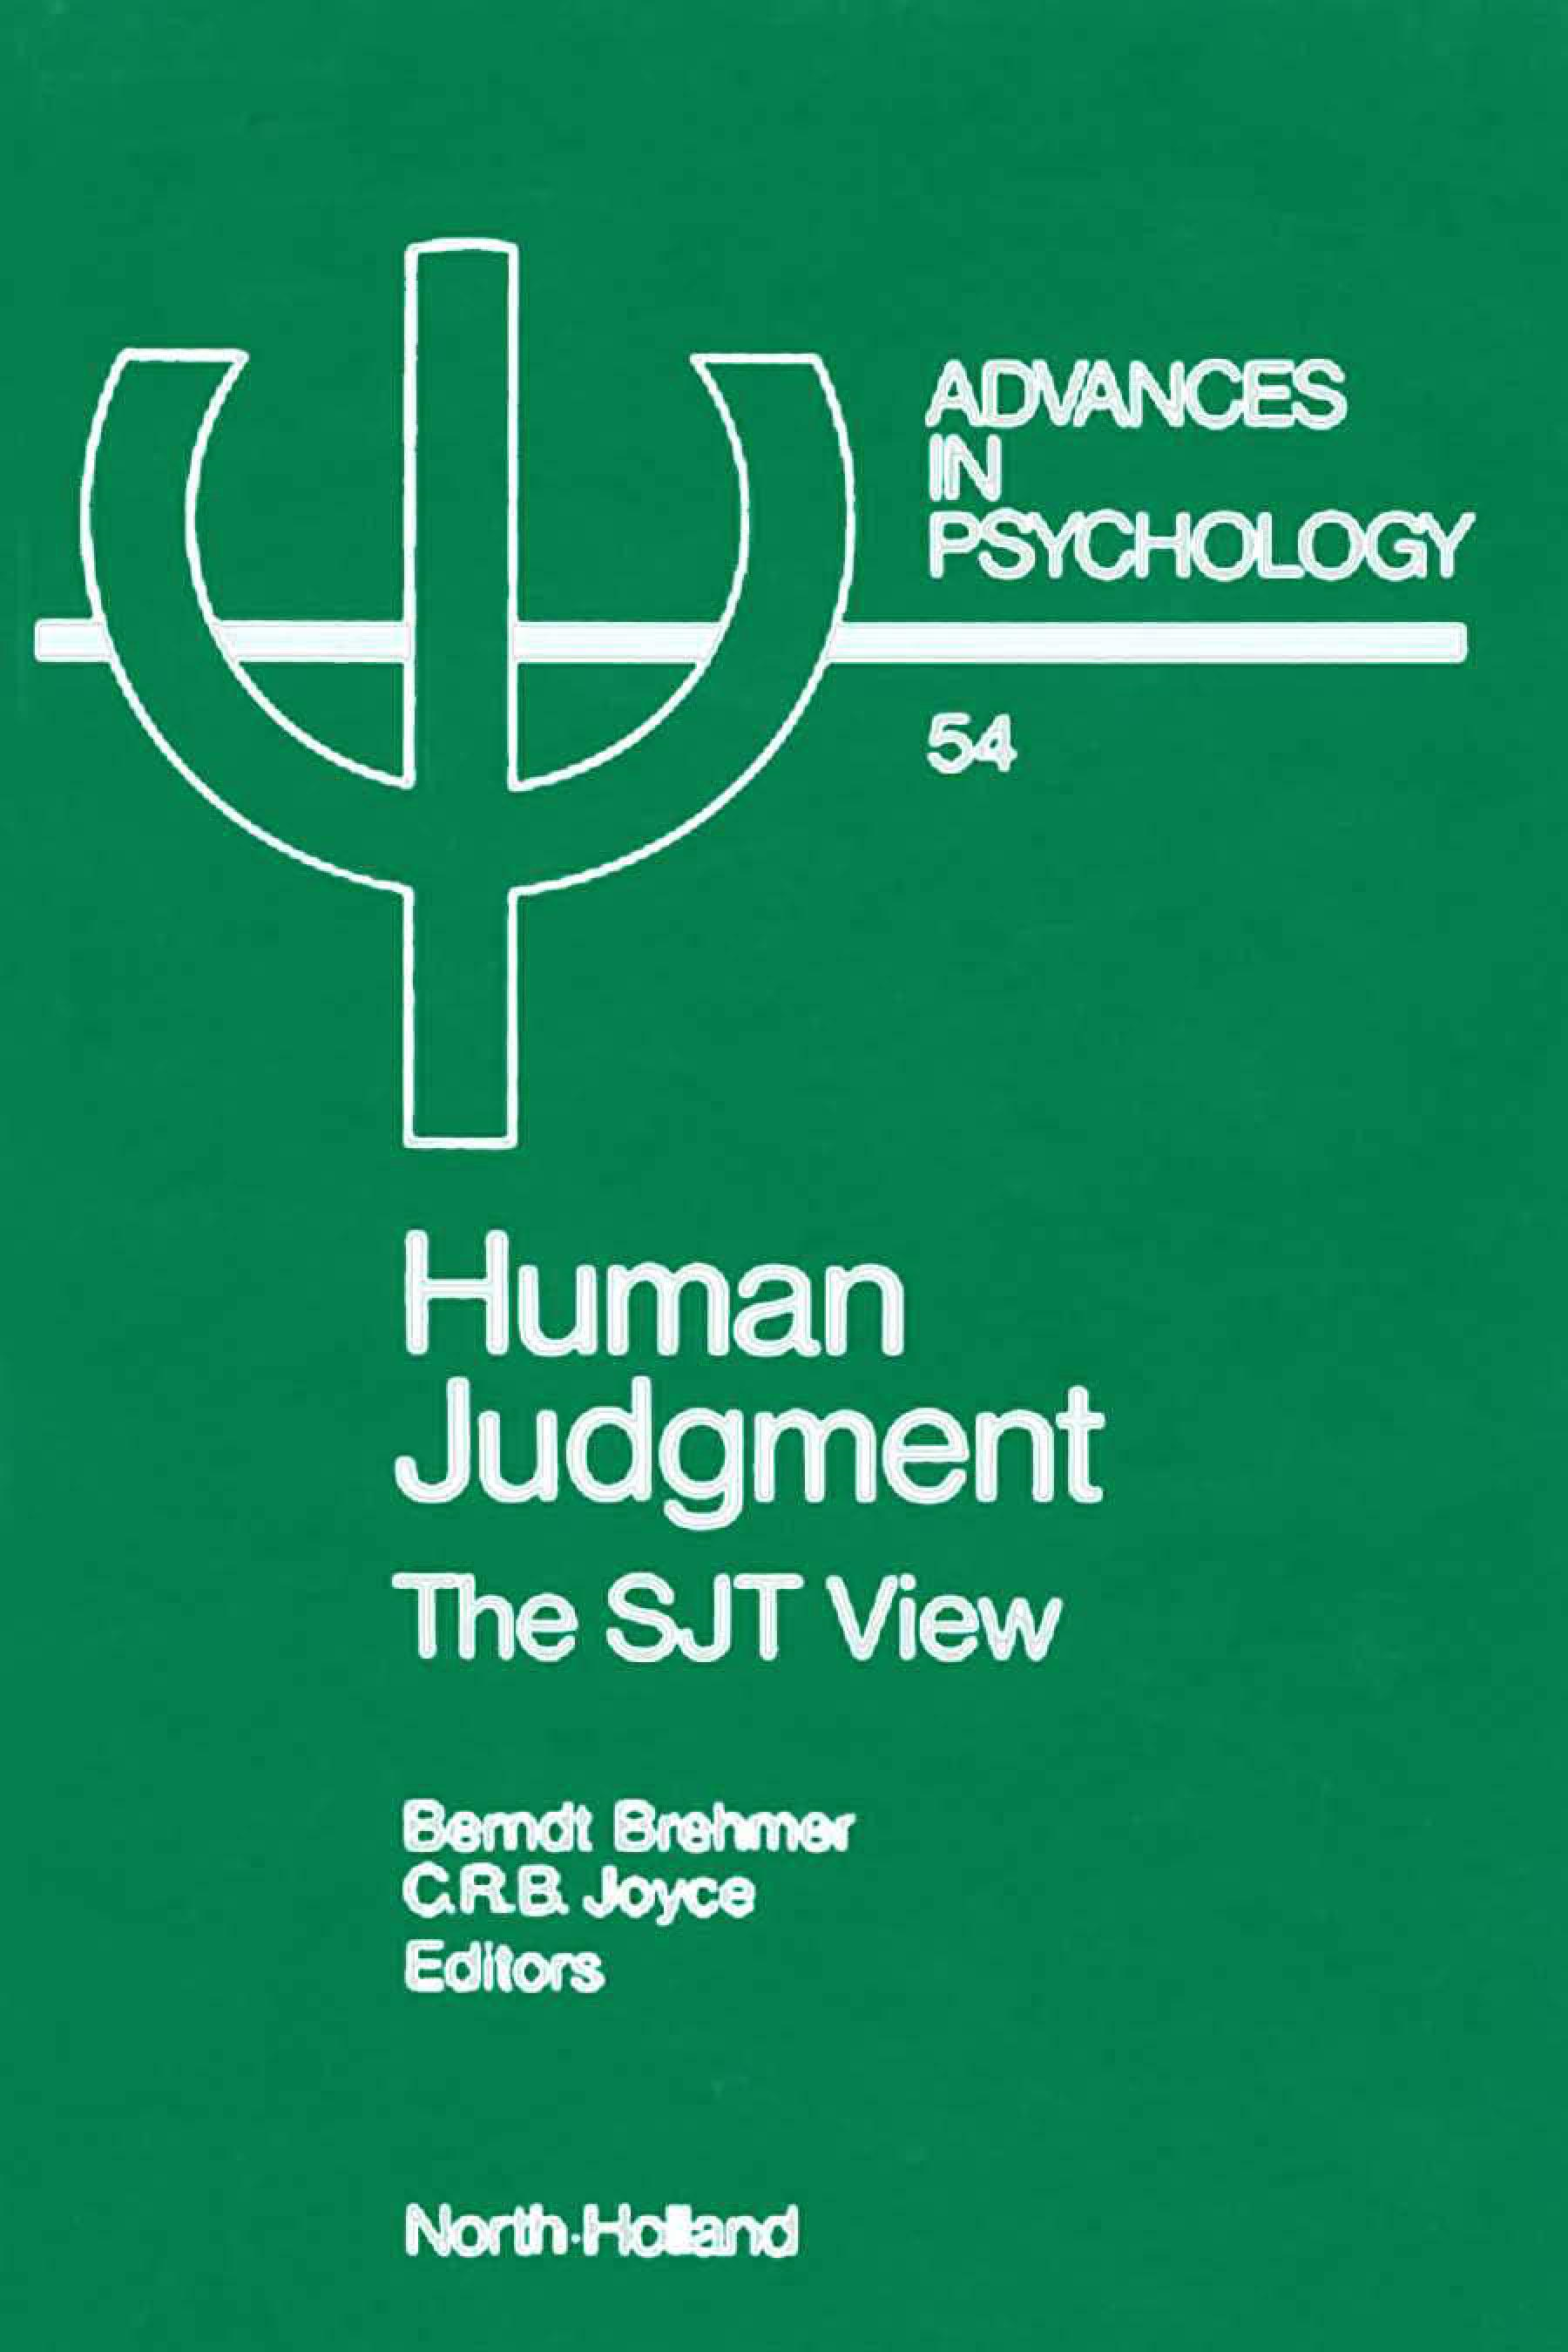 Human Judgment: The SJT View